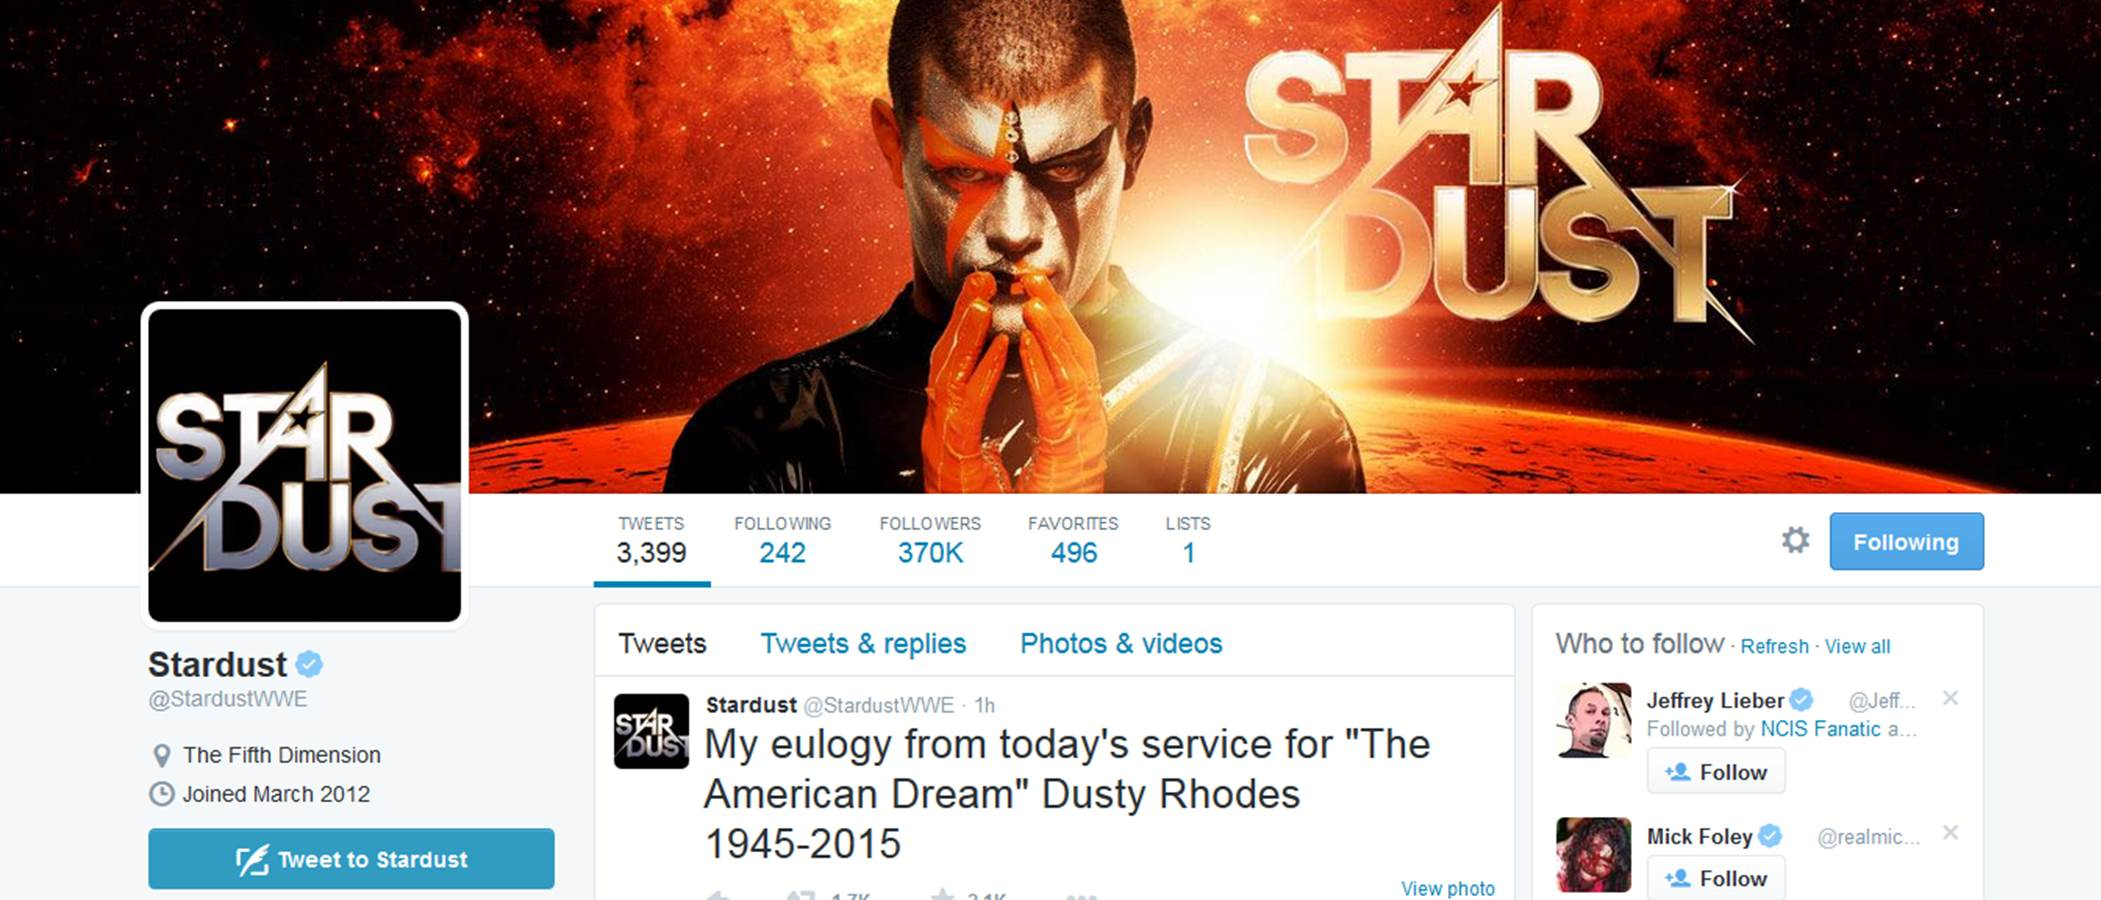 Stardust Cody Rhodes Runnels American Dream Dusty Rhodes Funeral Eulogy 1